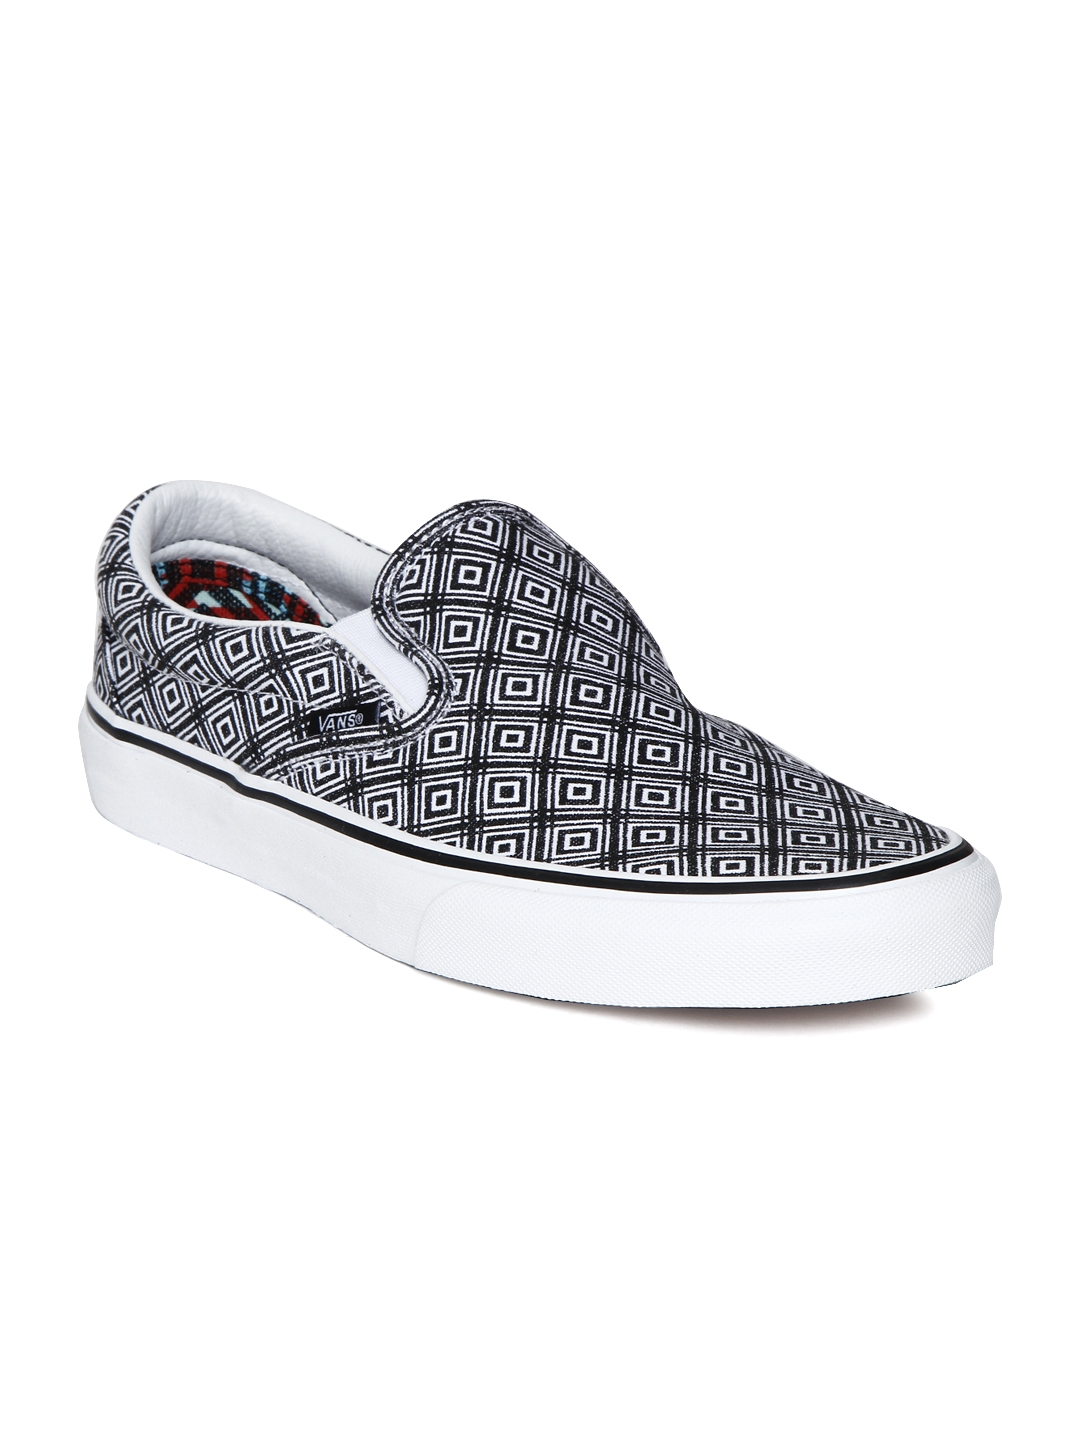 5a79d76746e Buy Vans Unisex Black Printed CLASSIC SLIP ON Sneakers - Casual ...